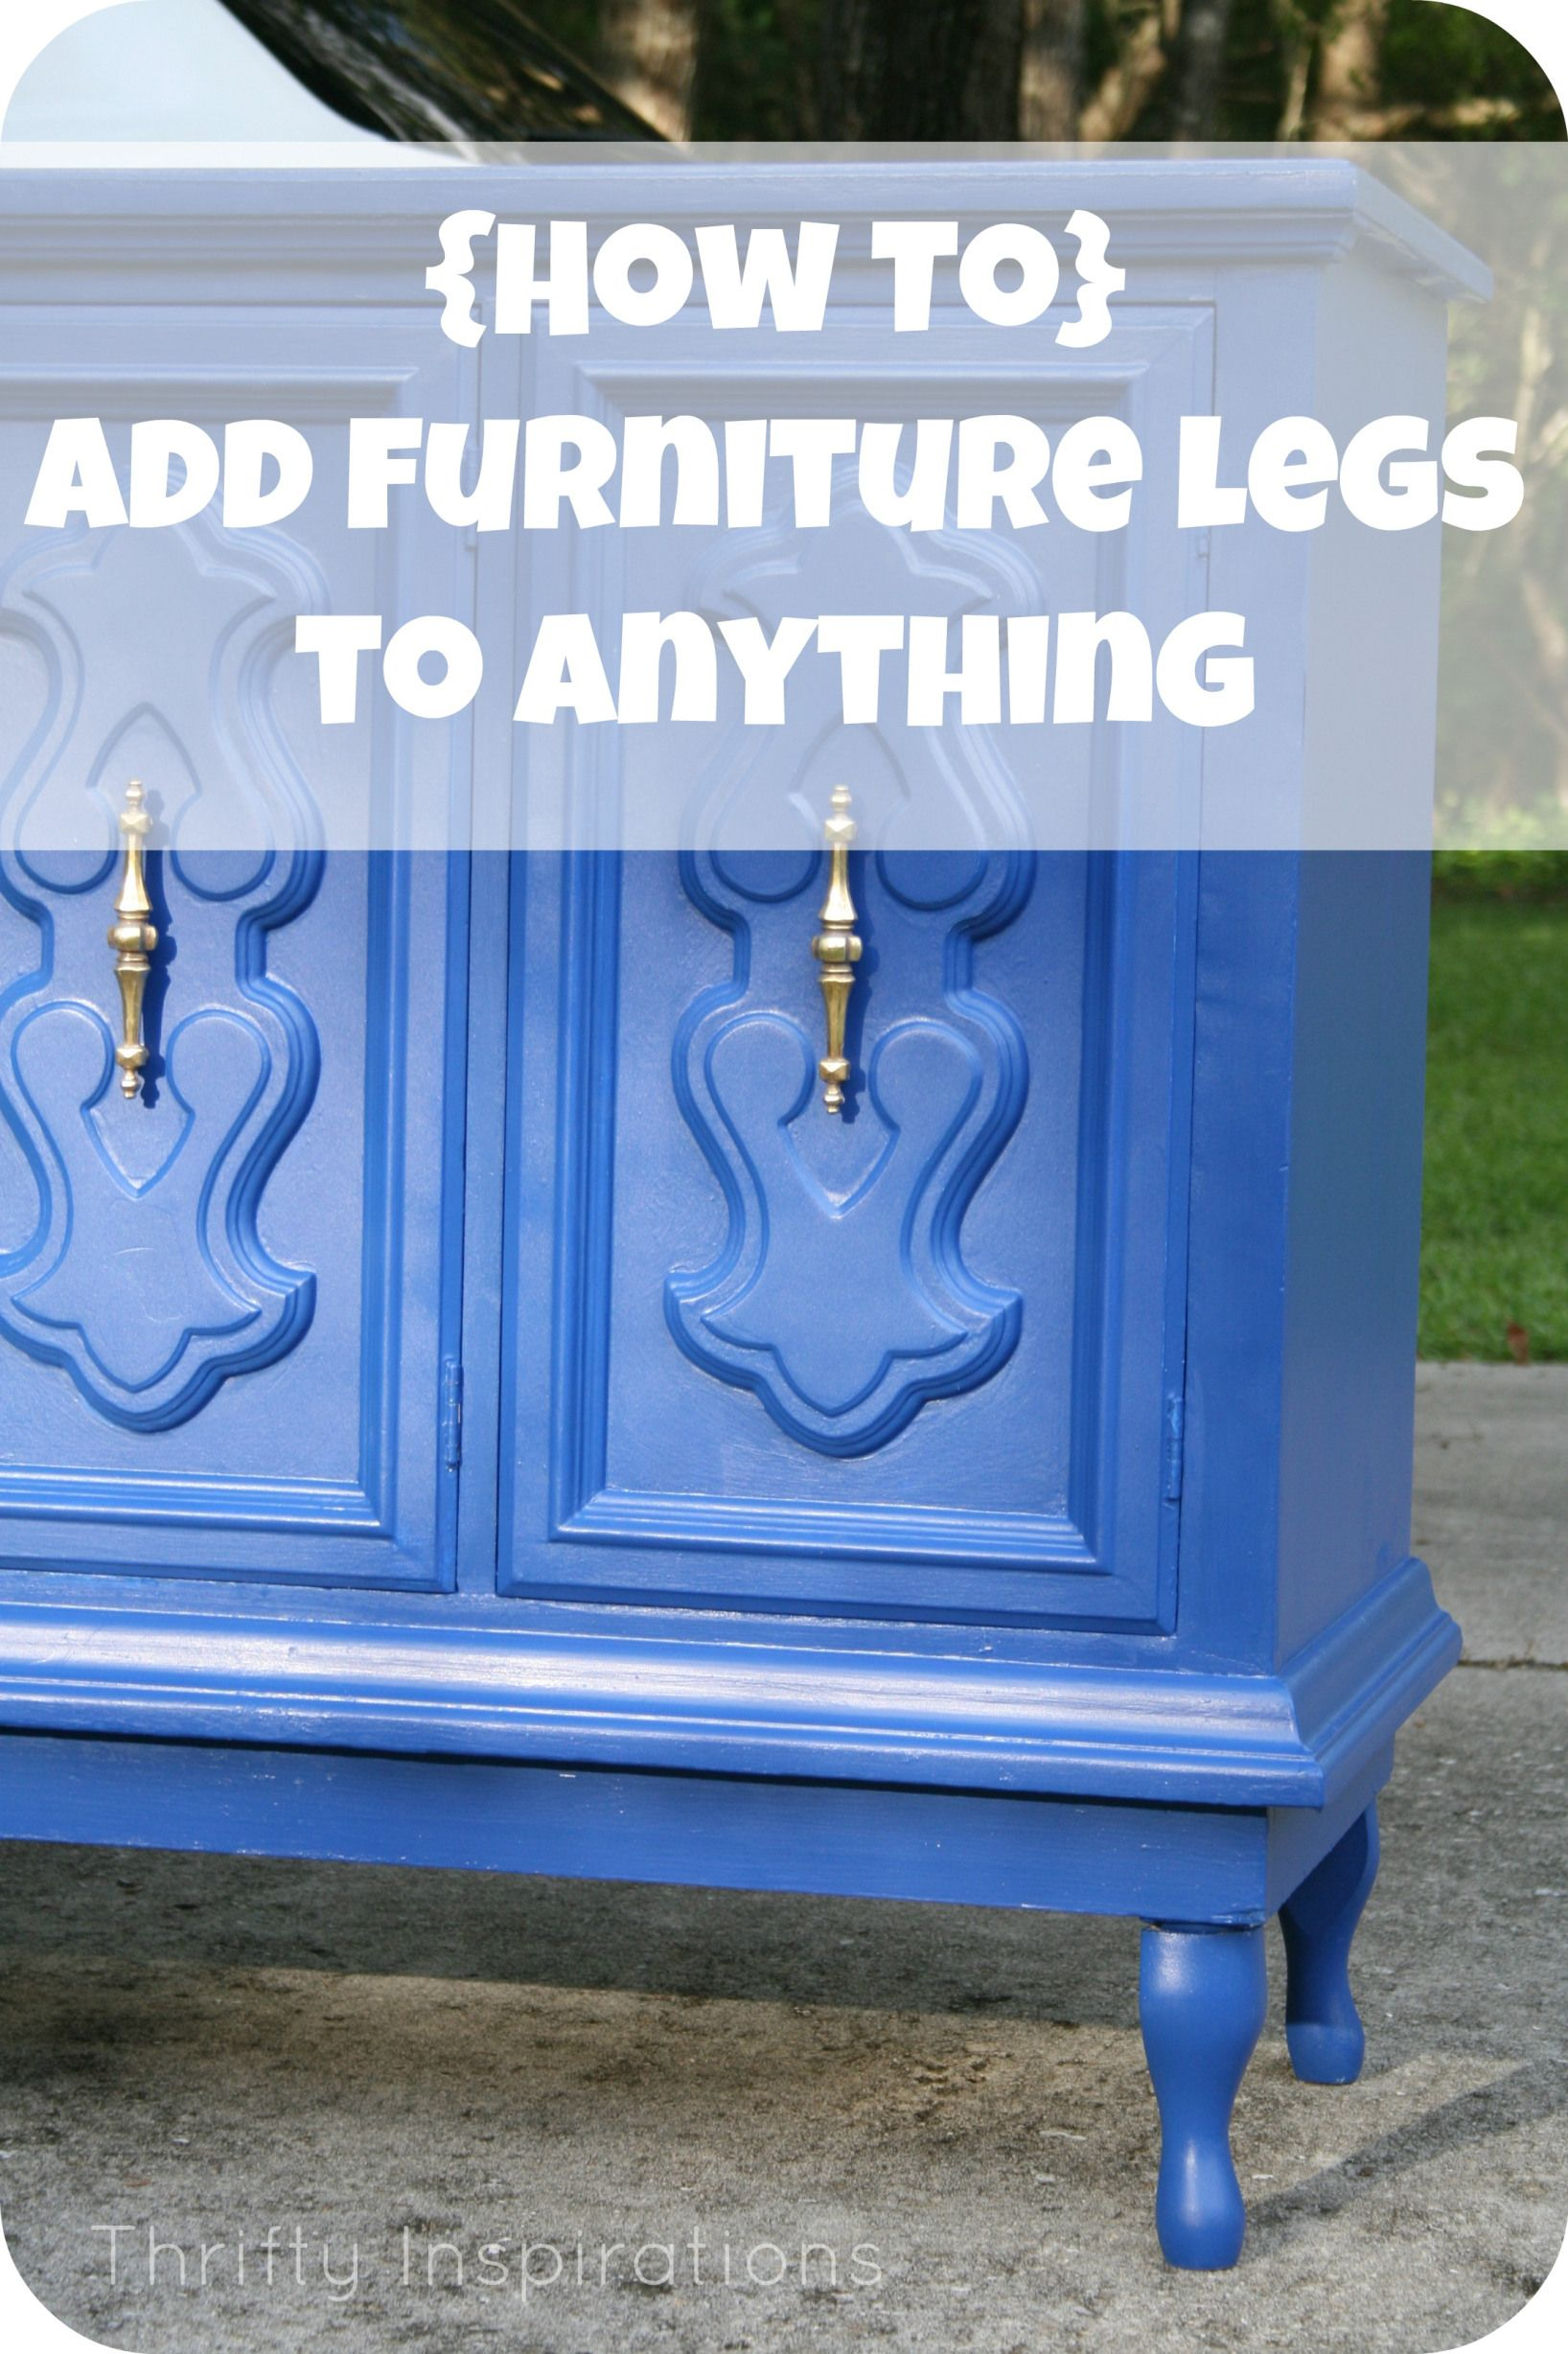 Superbe How To Add Furniture Legs Anything Raise The Dresser In